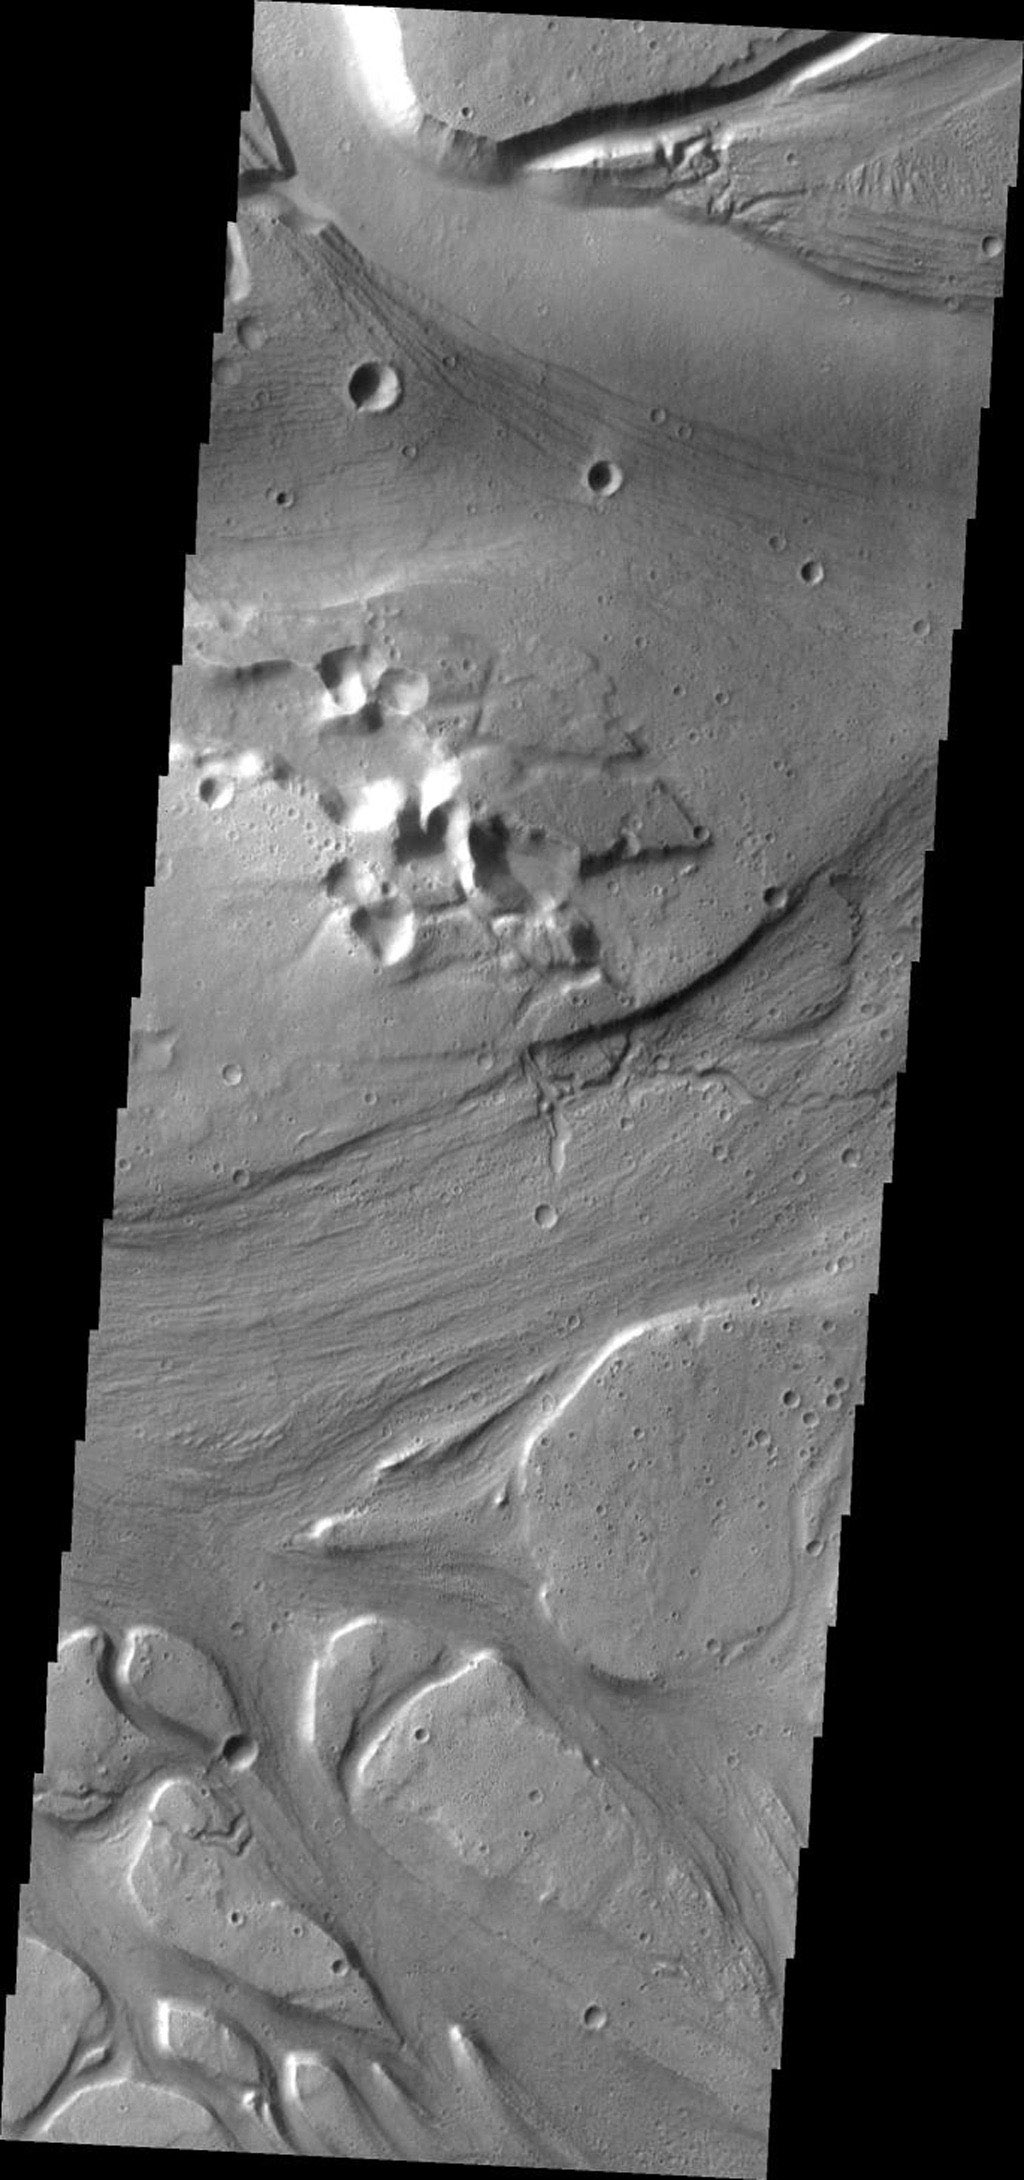 This image from NASA's Mars Odyssey shows a complex region of channels, part of Kasei Valles, one of the large outflow channels on Mars.